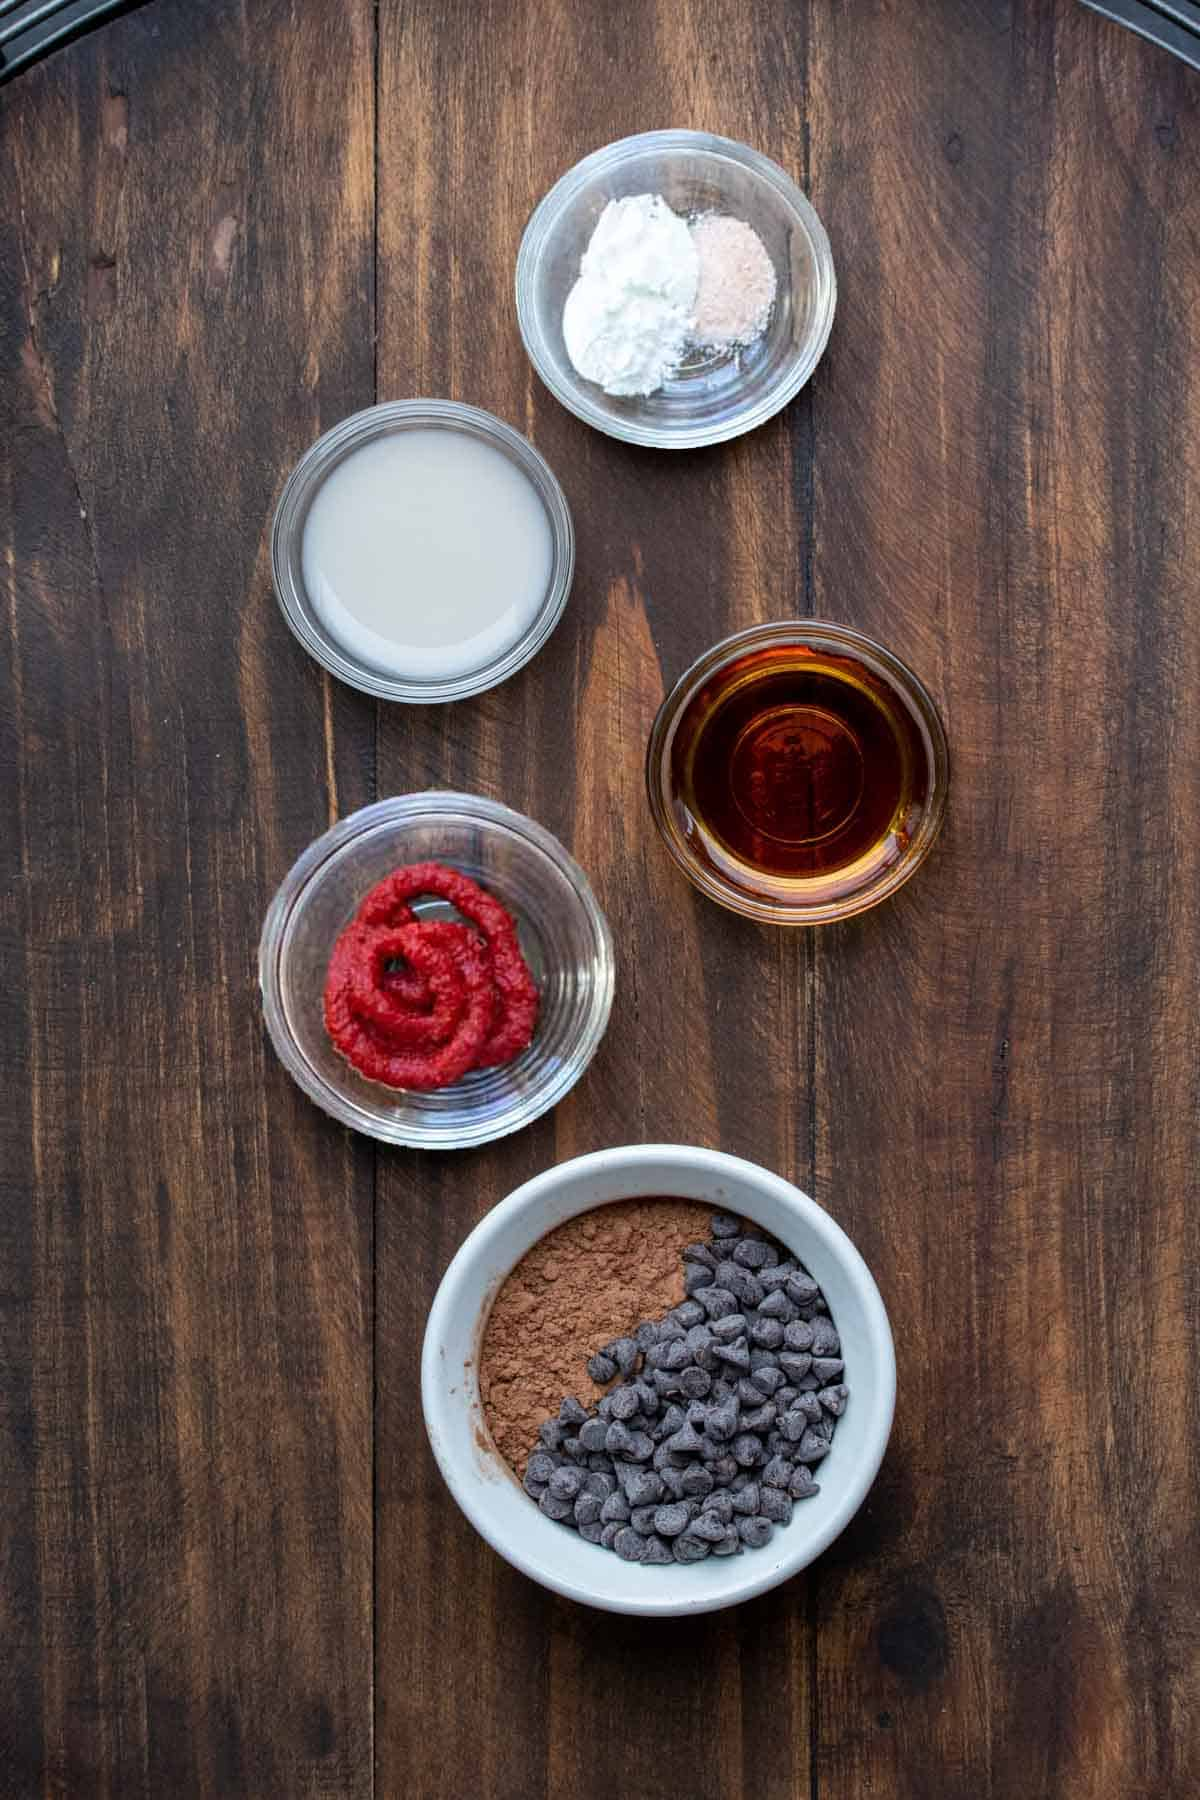 Bowls with ingredients to make a chocolate mug cake